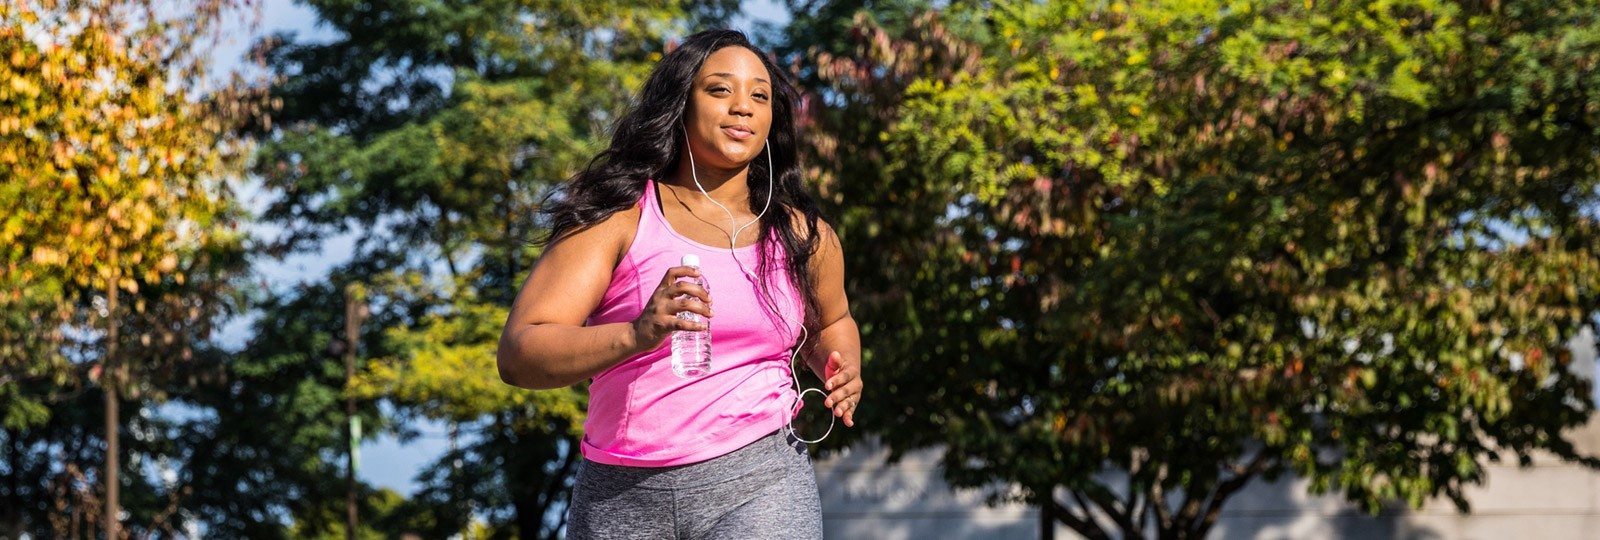 Healthy woman running outside